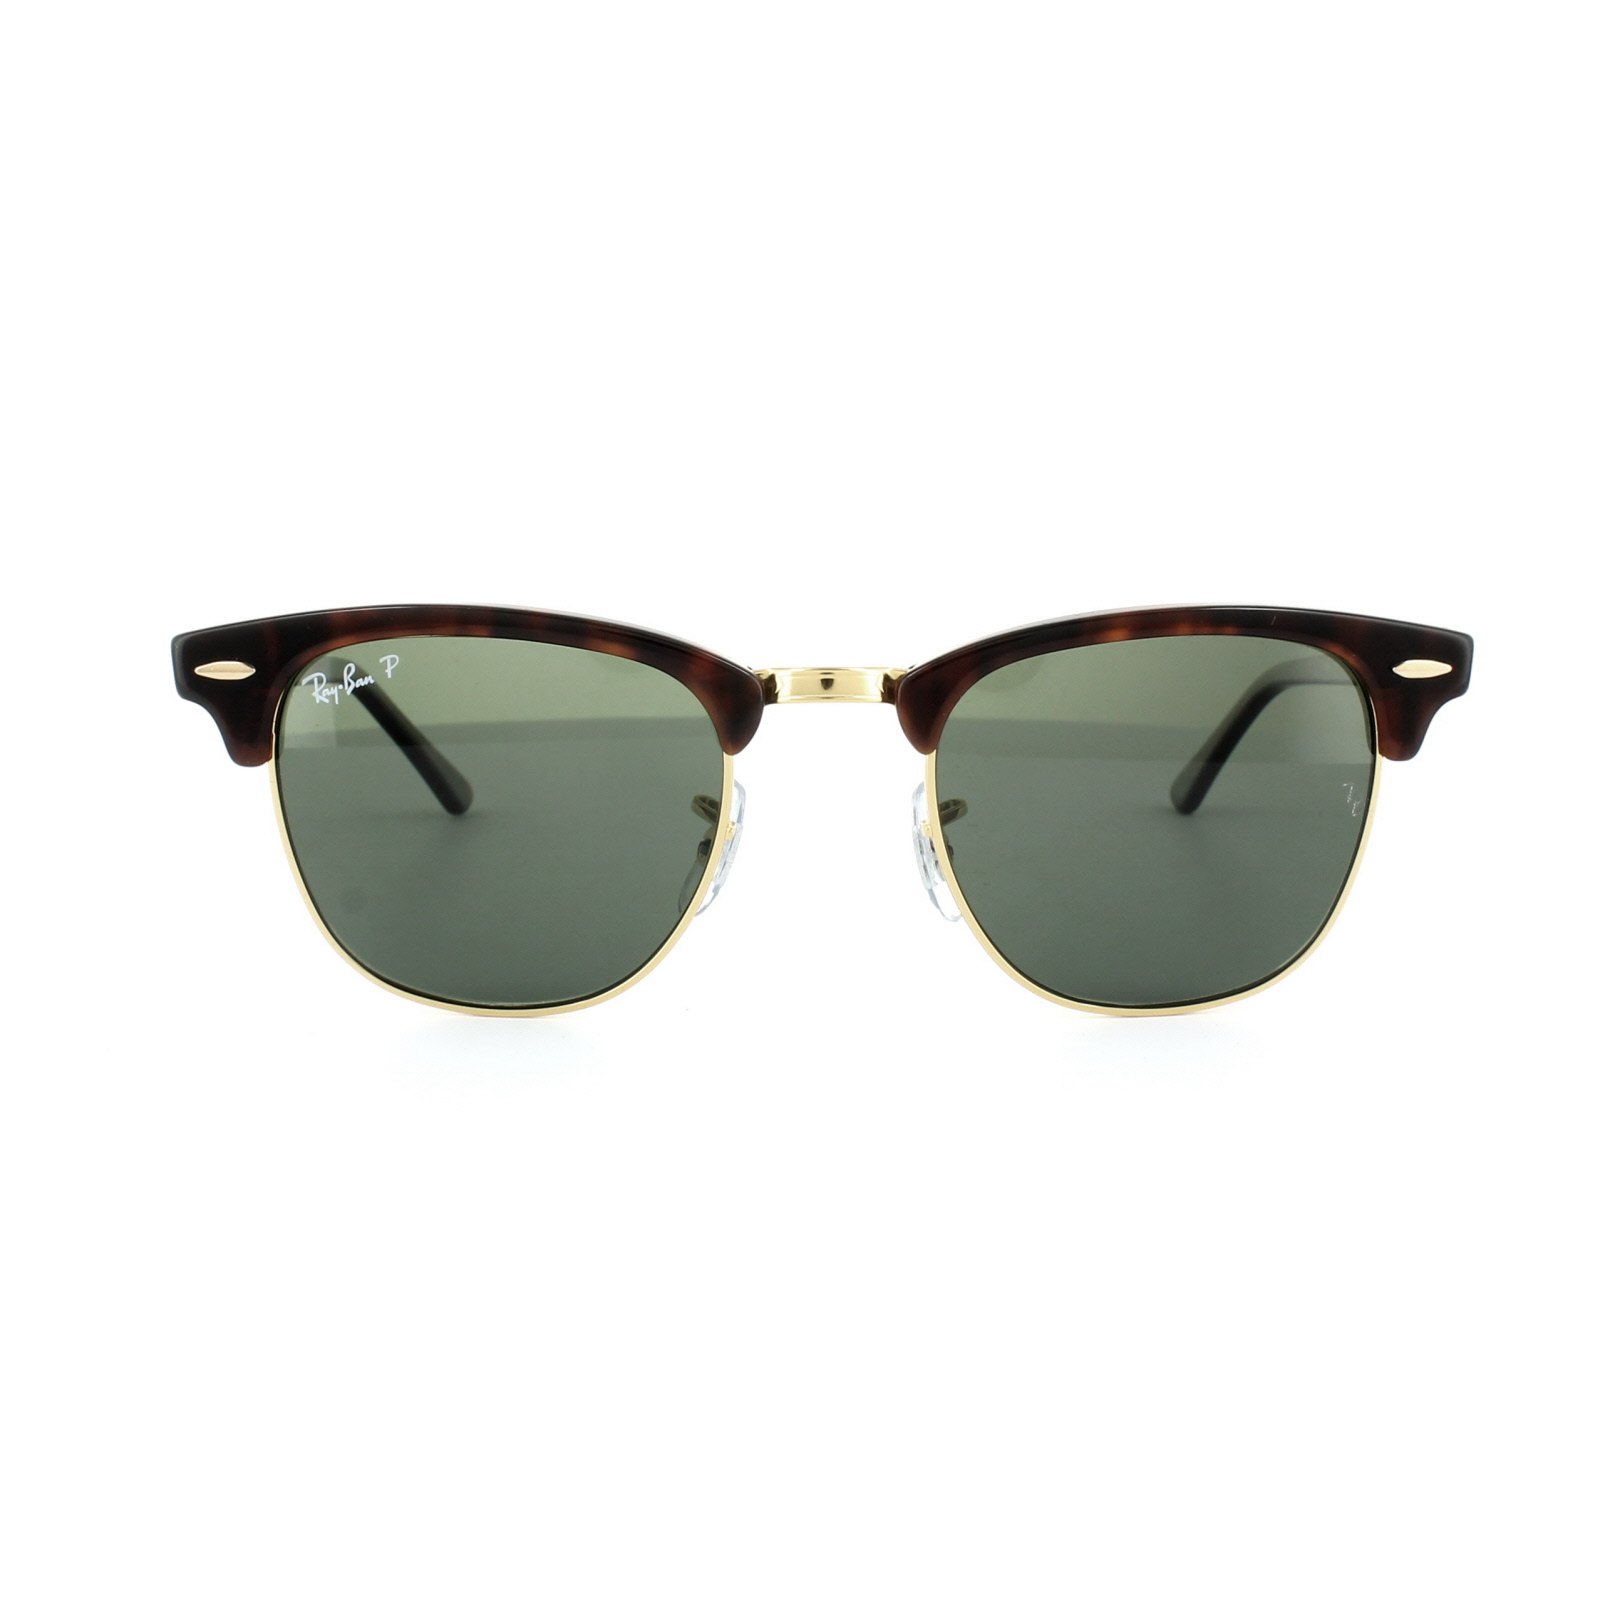 a3dfc04551 ... Ray-Ban Sunglasses Clubmaster 3016 990 58 Red Havana Green Polarized  Small 49mm Thumbnail ...